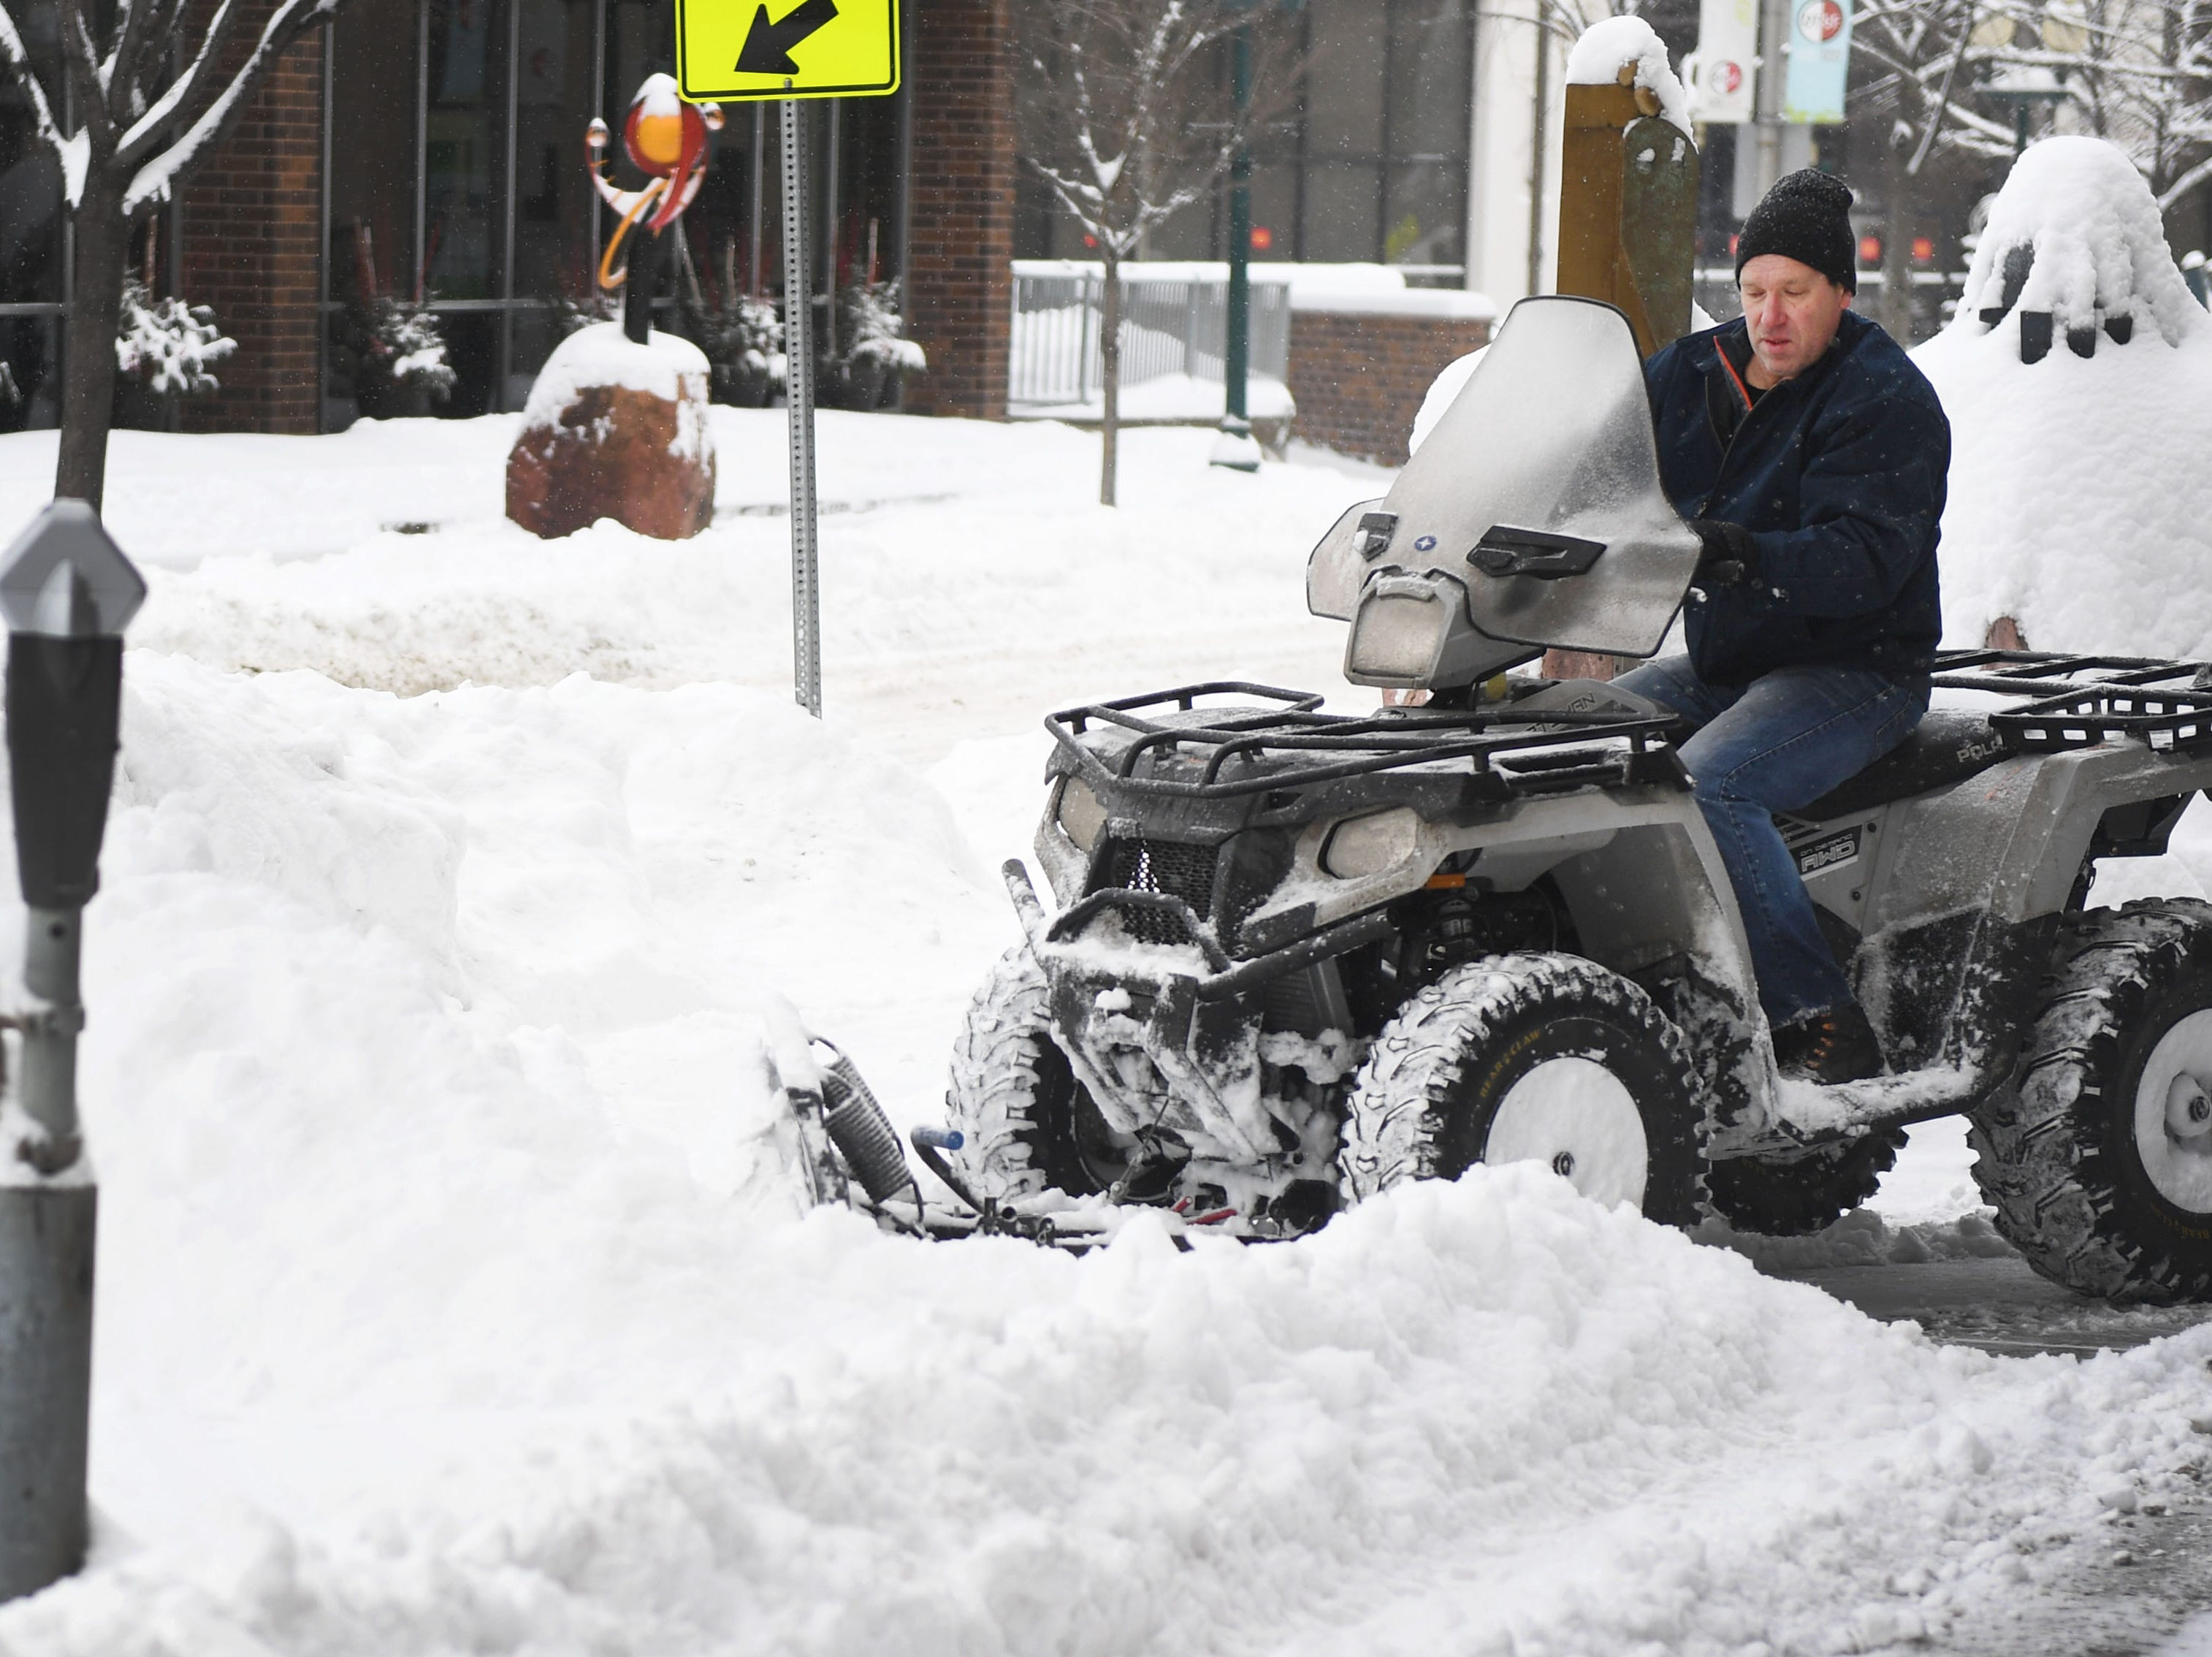 Jeff Vazee with Crescent Property Management plows snow with a four wheeler Wednesday, Feb. 20, in Sioux Falls. According to the Sioux Falls national weather service the Sioux Falls airport was at 7.6 inches as of 10:12 a.m.